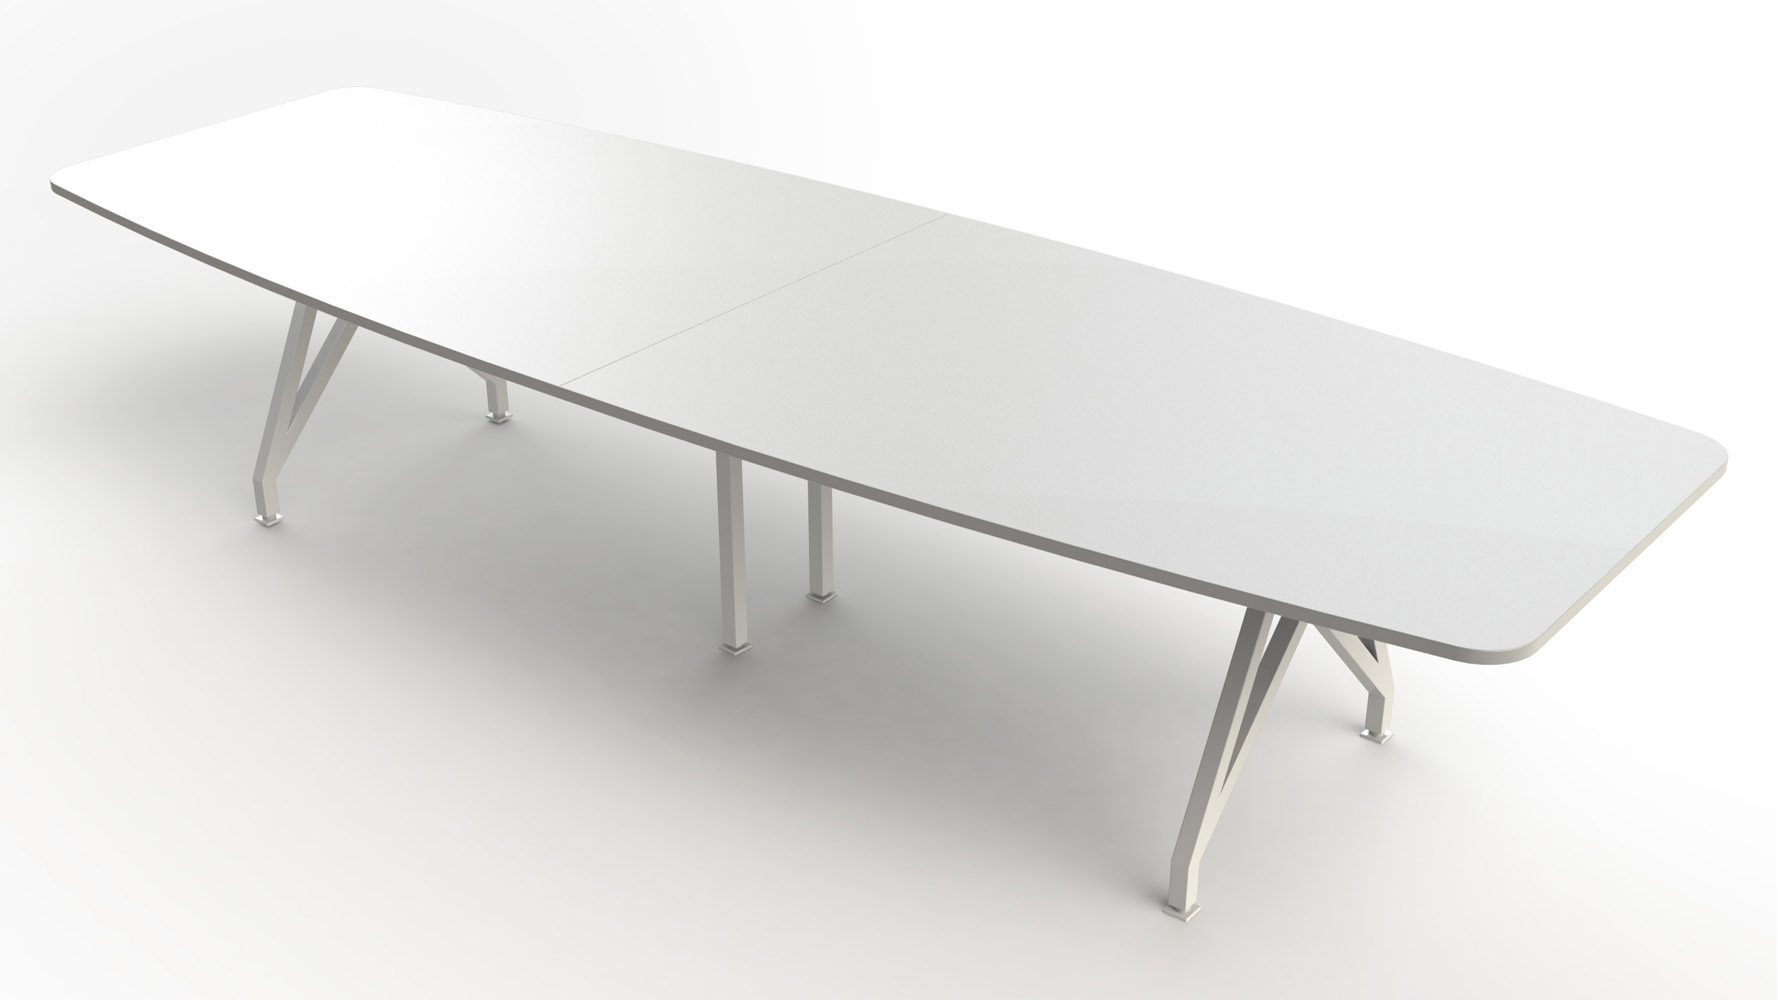 cheap meeting tables Office conference tables and meeting tables in modern and trendy design, making your corporate image another step higher.